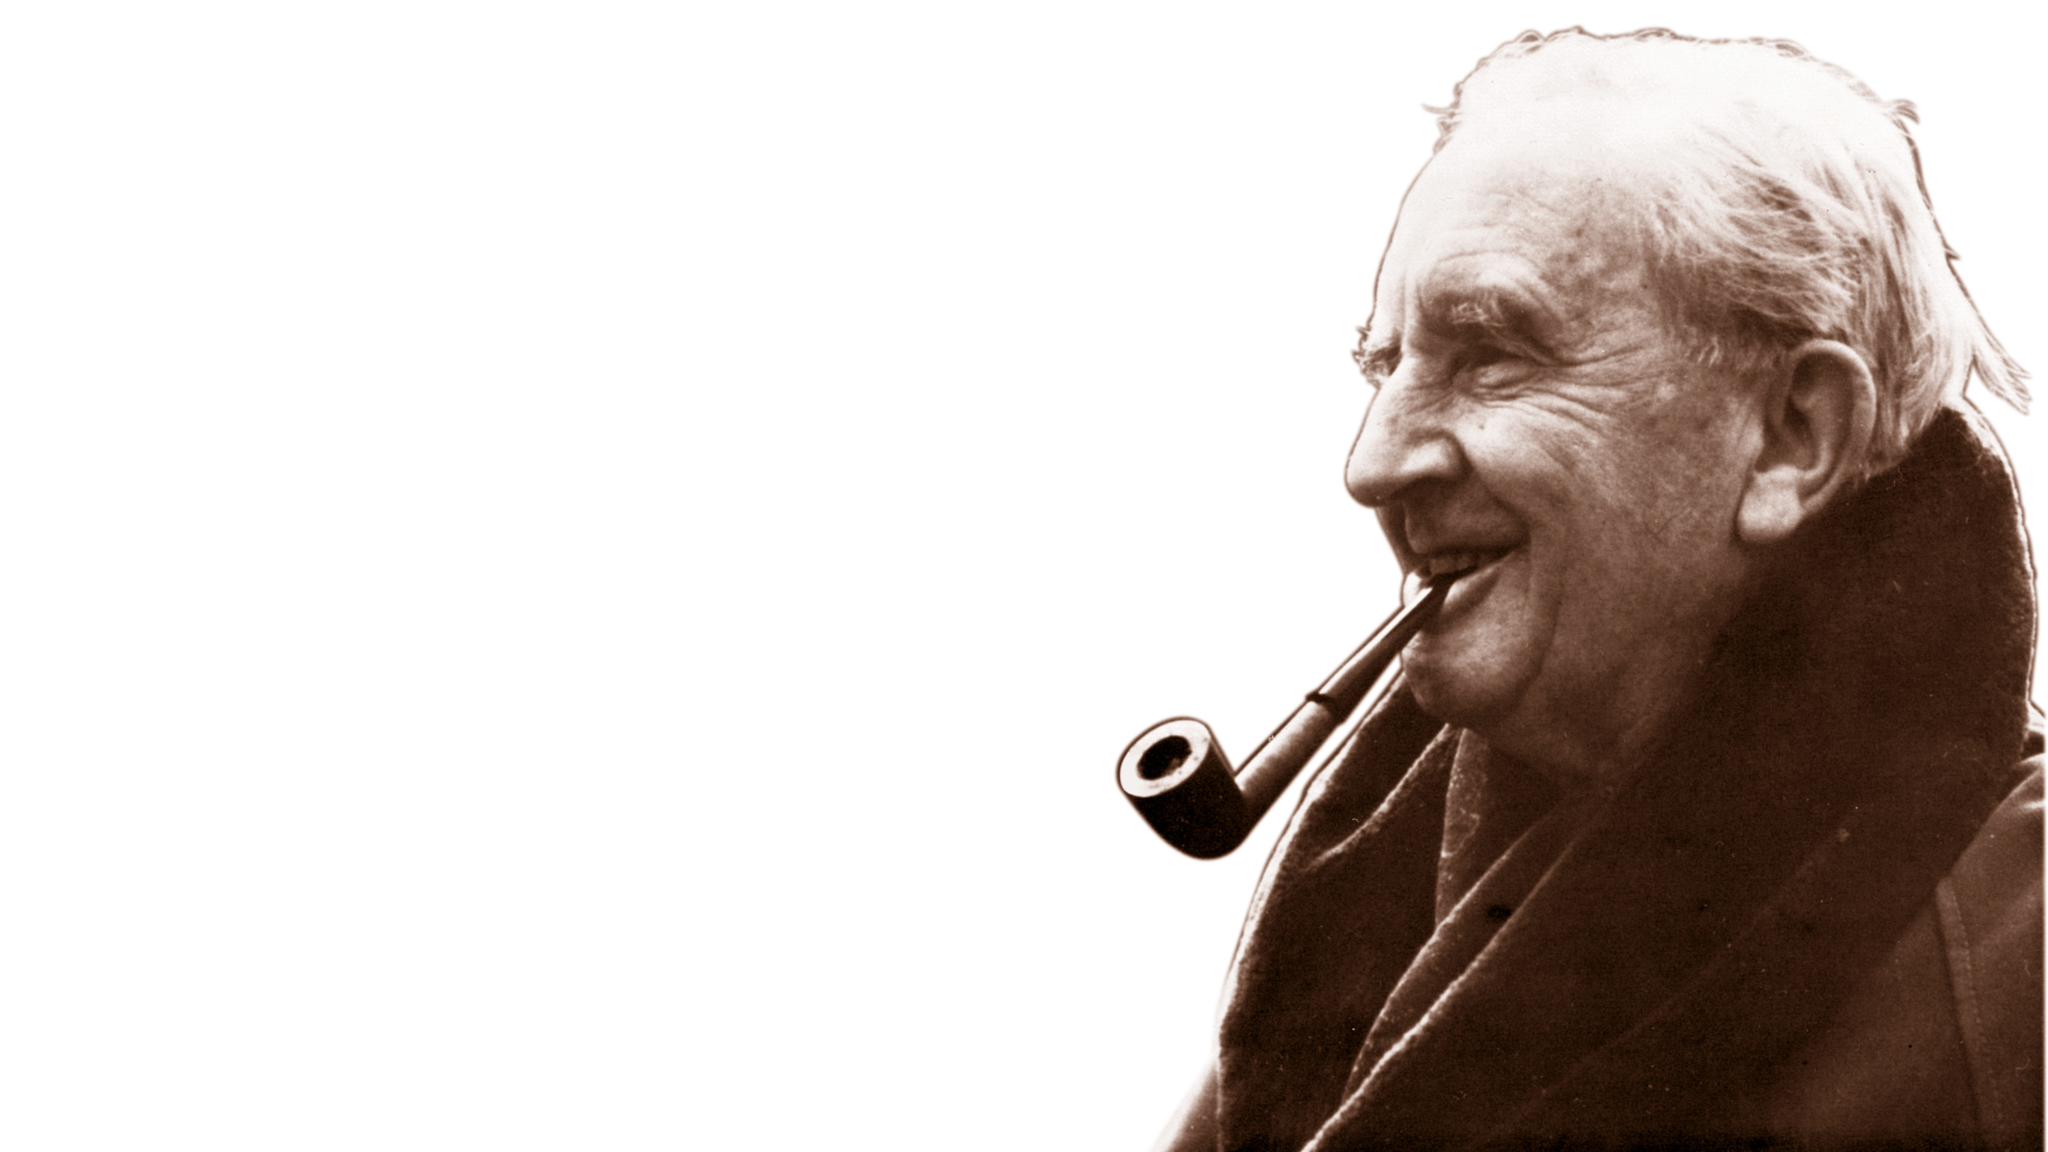 an introduction to the literature by j r r tolkien Complete summary of j r r tolkien's the hobbit enotes plot summaries cover all the significant action of the hobbit.